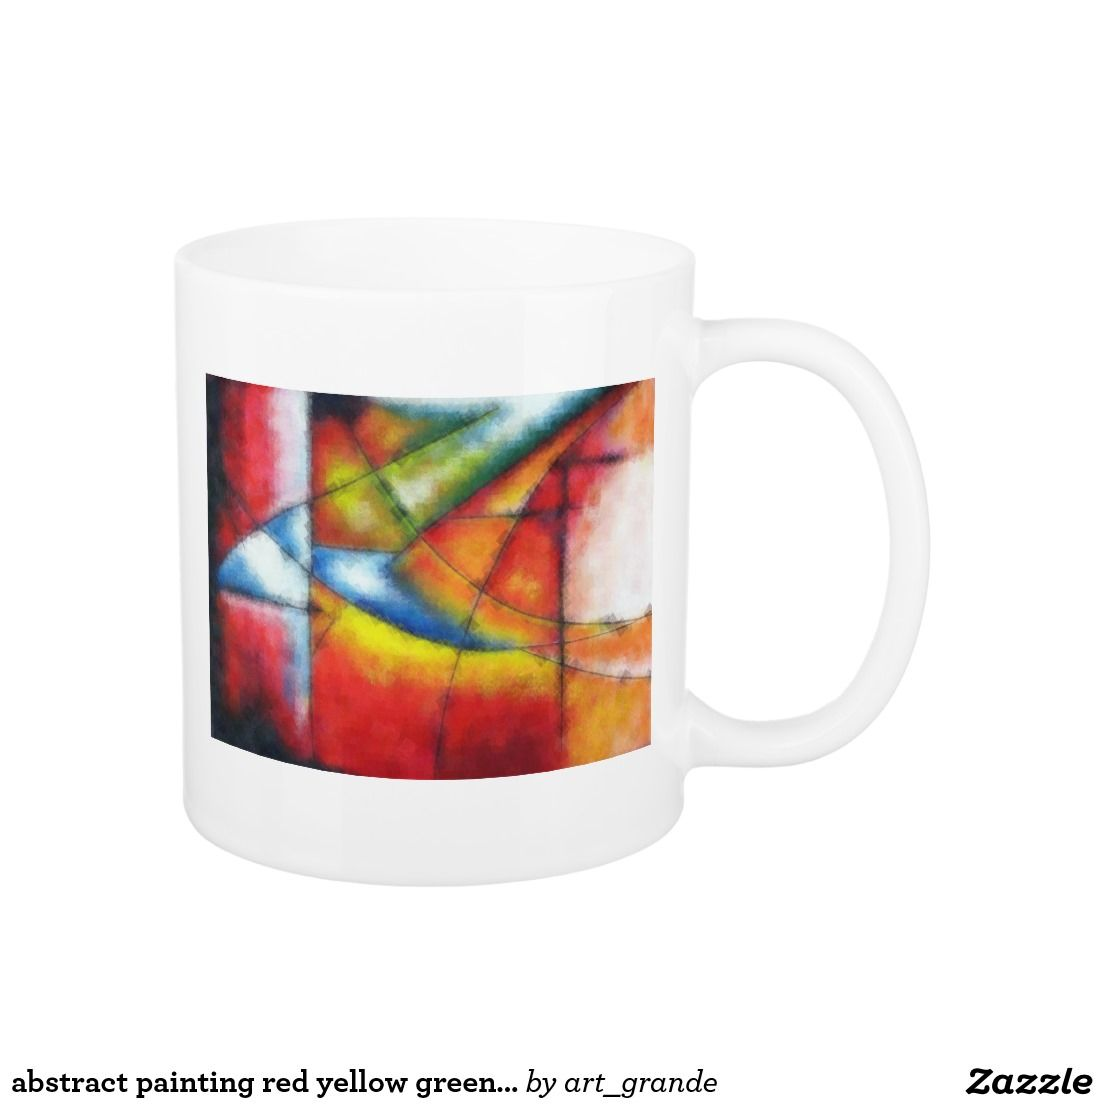 abstract painting red yellow green blue coffee mug